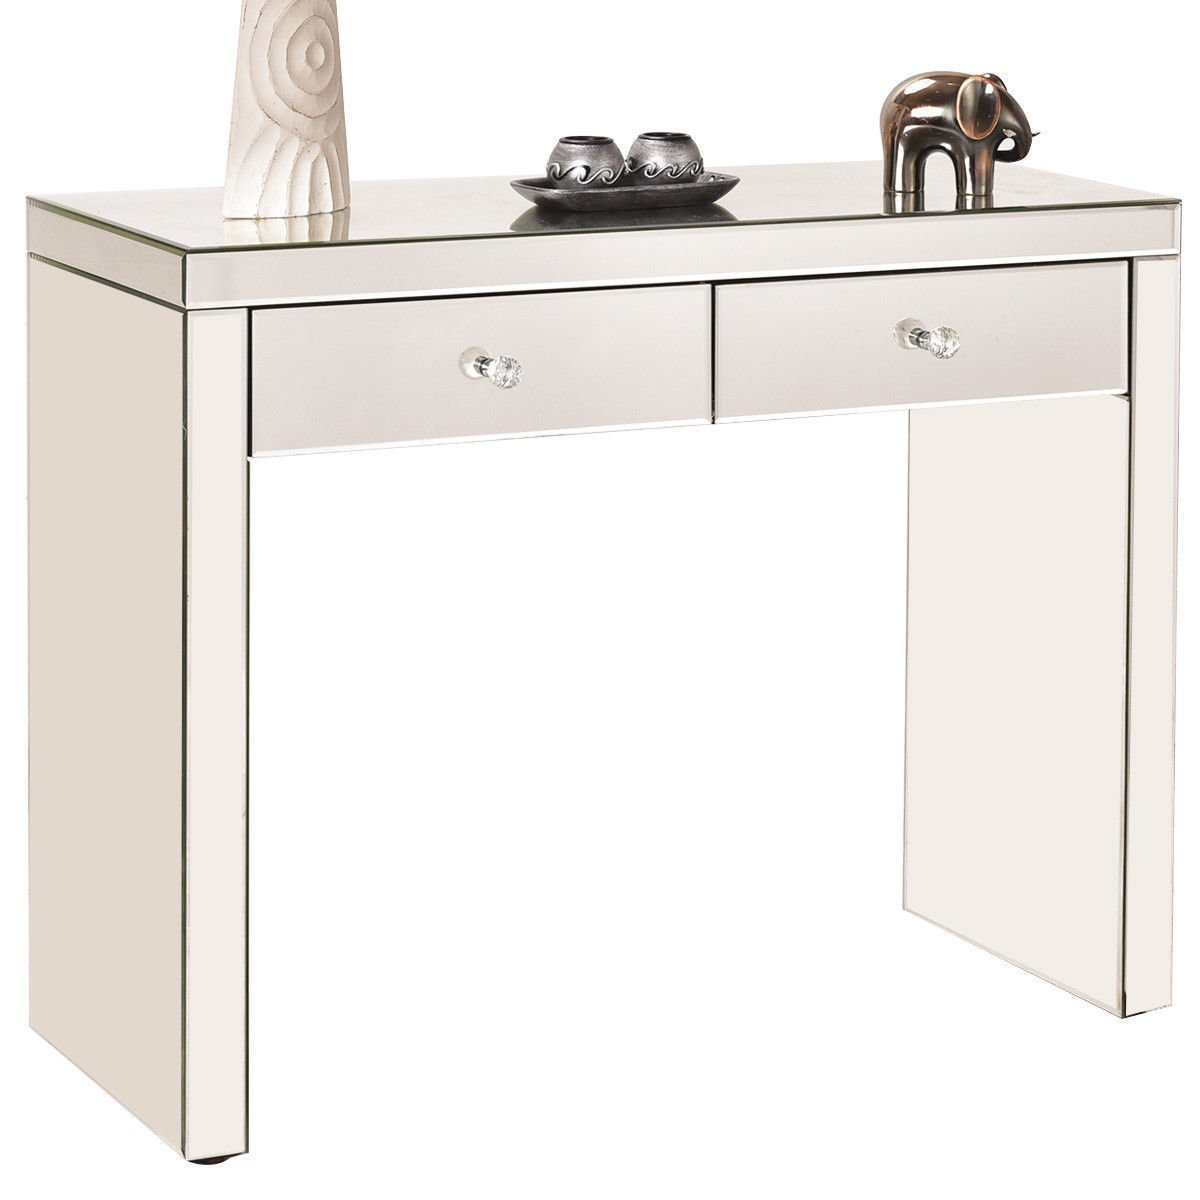 Get Quotations · Silver Mirrored Console Table Vanity Dressing Make Up Desk  W/ 2 Drawers Home Decor Furniture